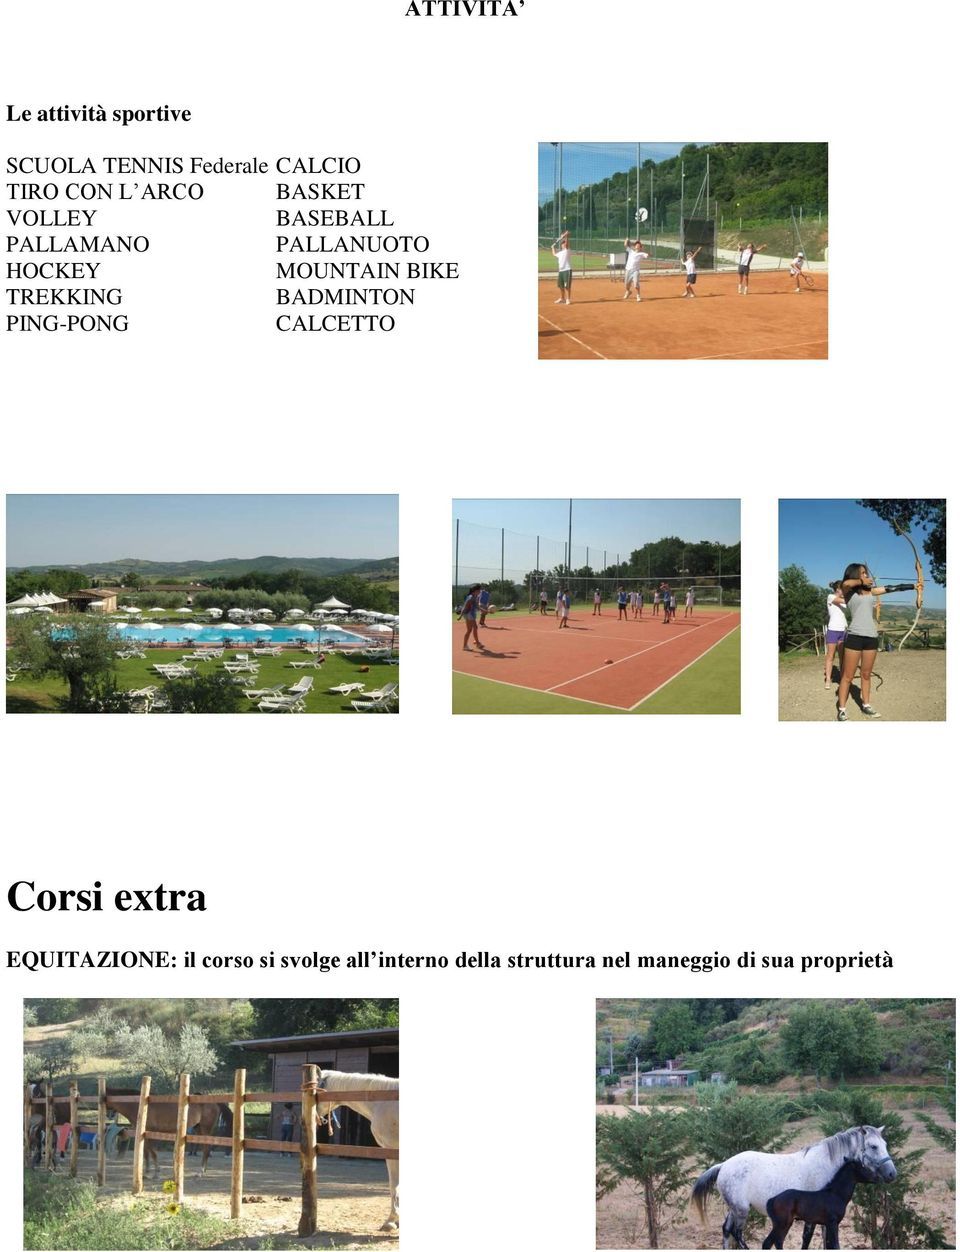 BIKE TREKKING BADMINTON PING-PONG CALCETTO Corsi extra EQUITAZIONE: